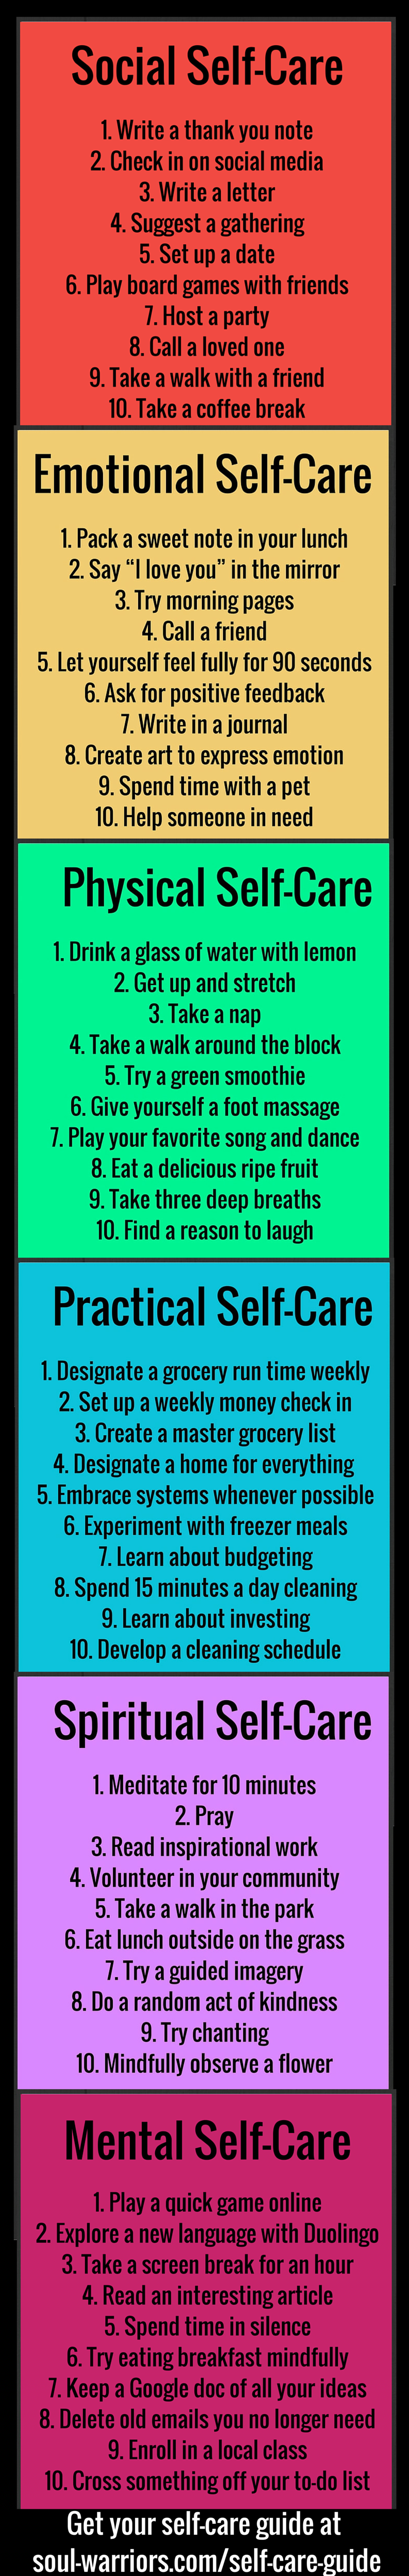 6 self-care tips to stay stress-free in the run-up to Christmas pics